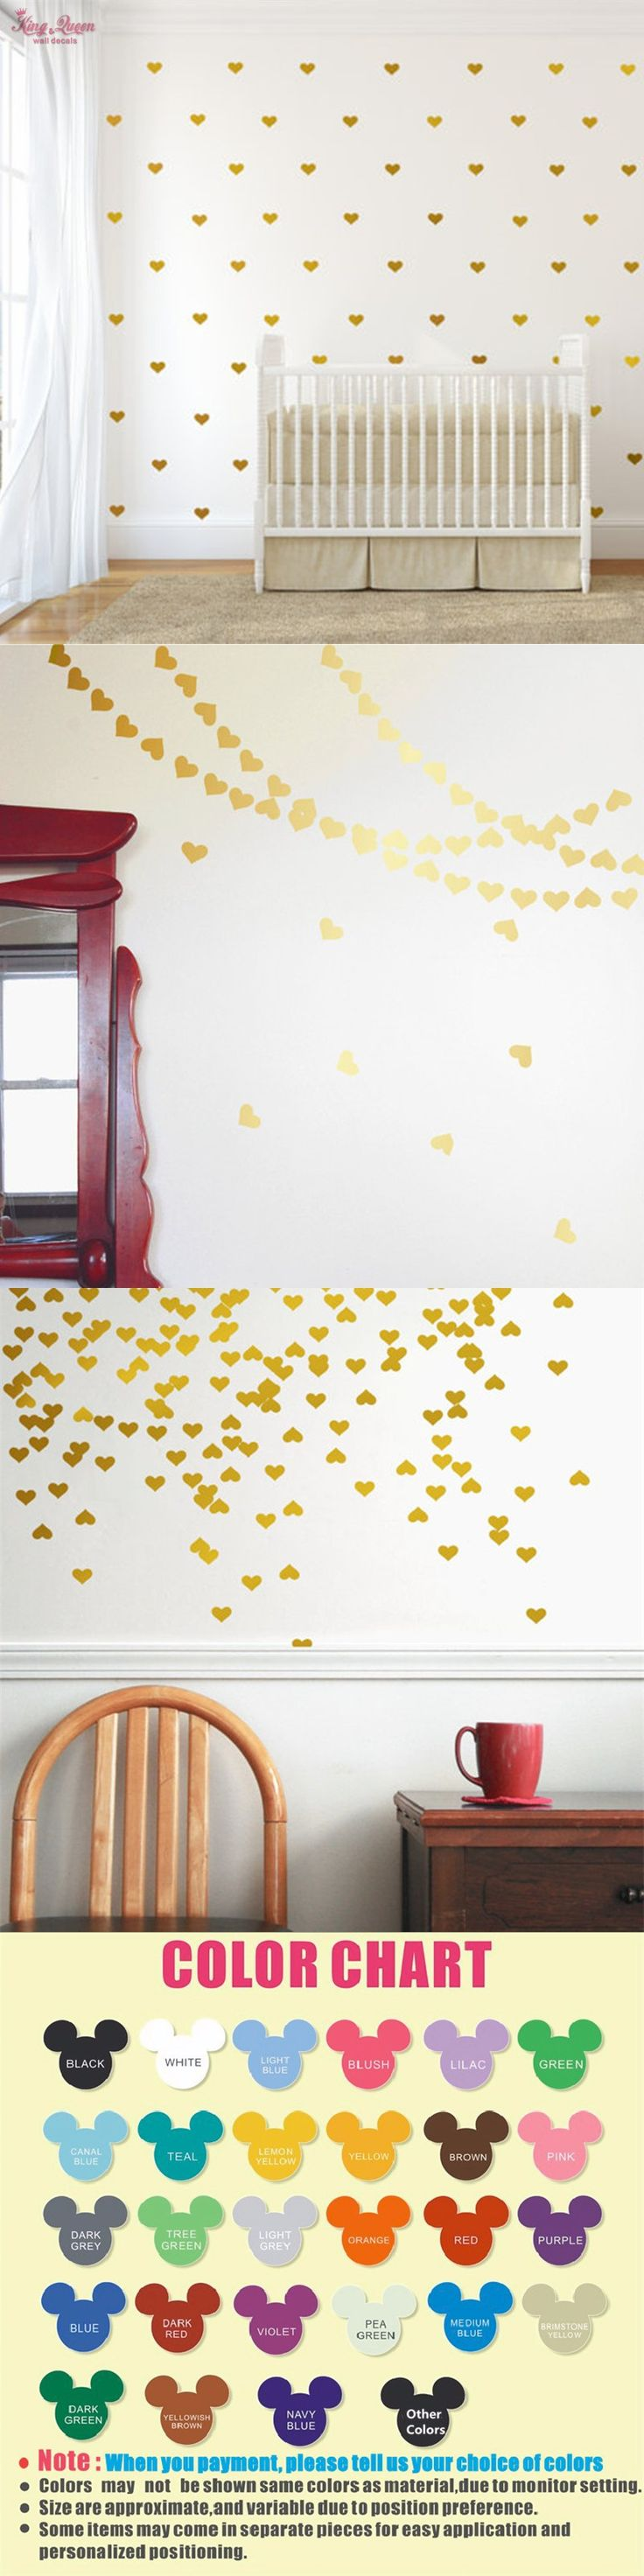 best 25 nursery wall murals ideas on pinterest nursery murals golden heart shape wall decal vinyl sticker kids bedroom wall art decor baby